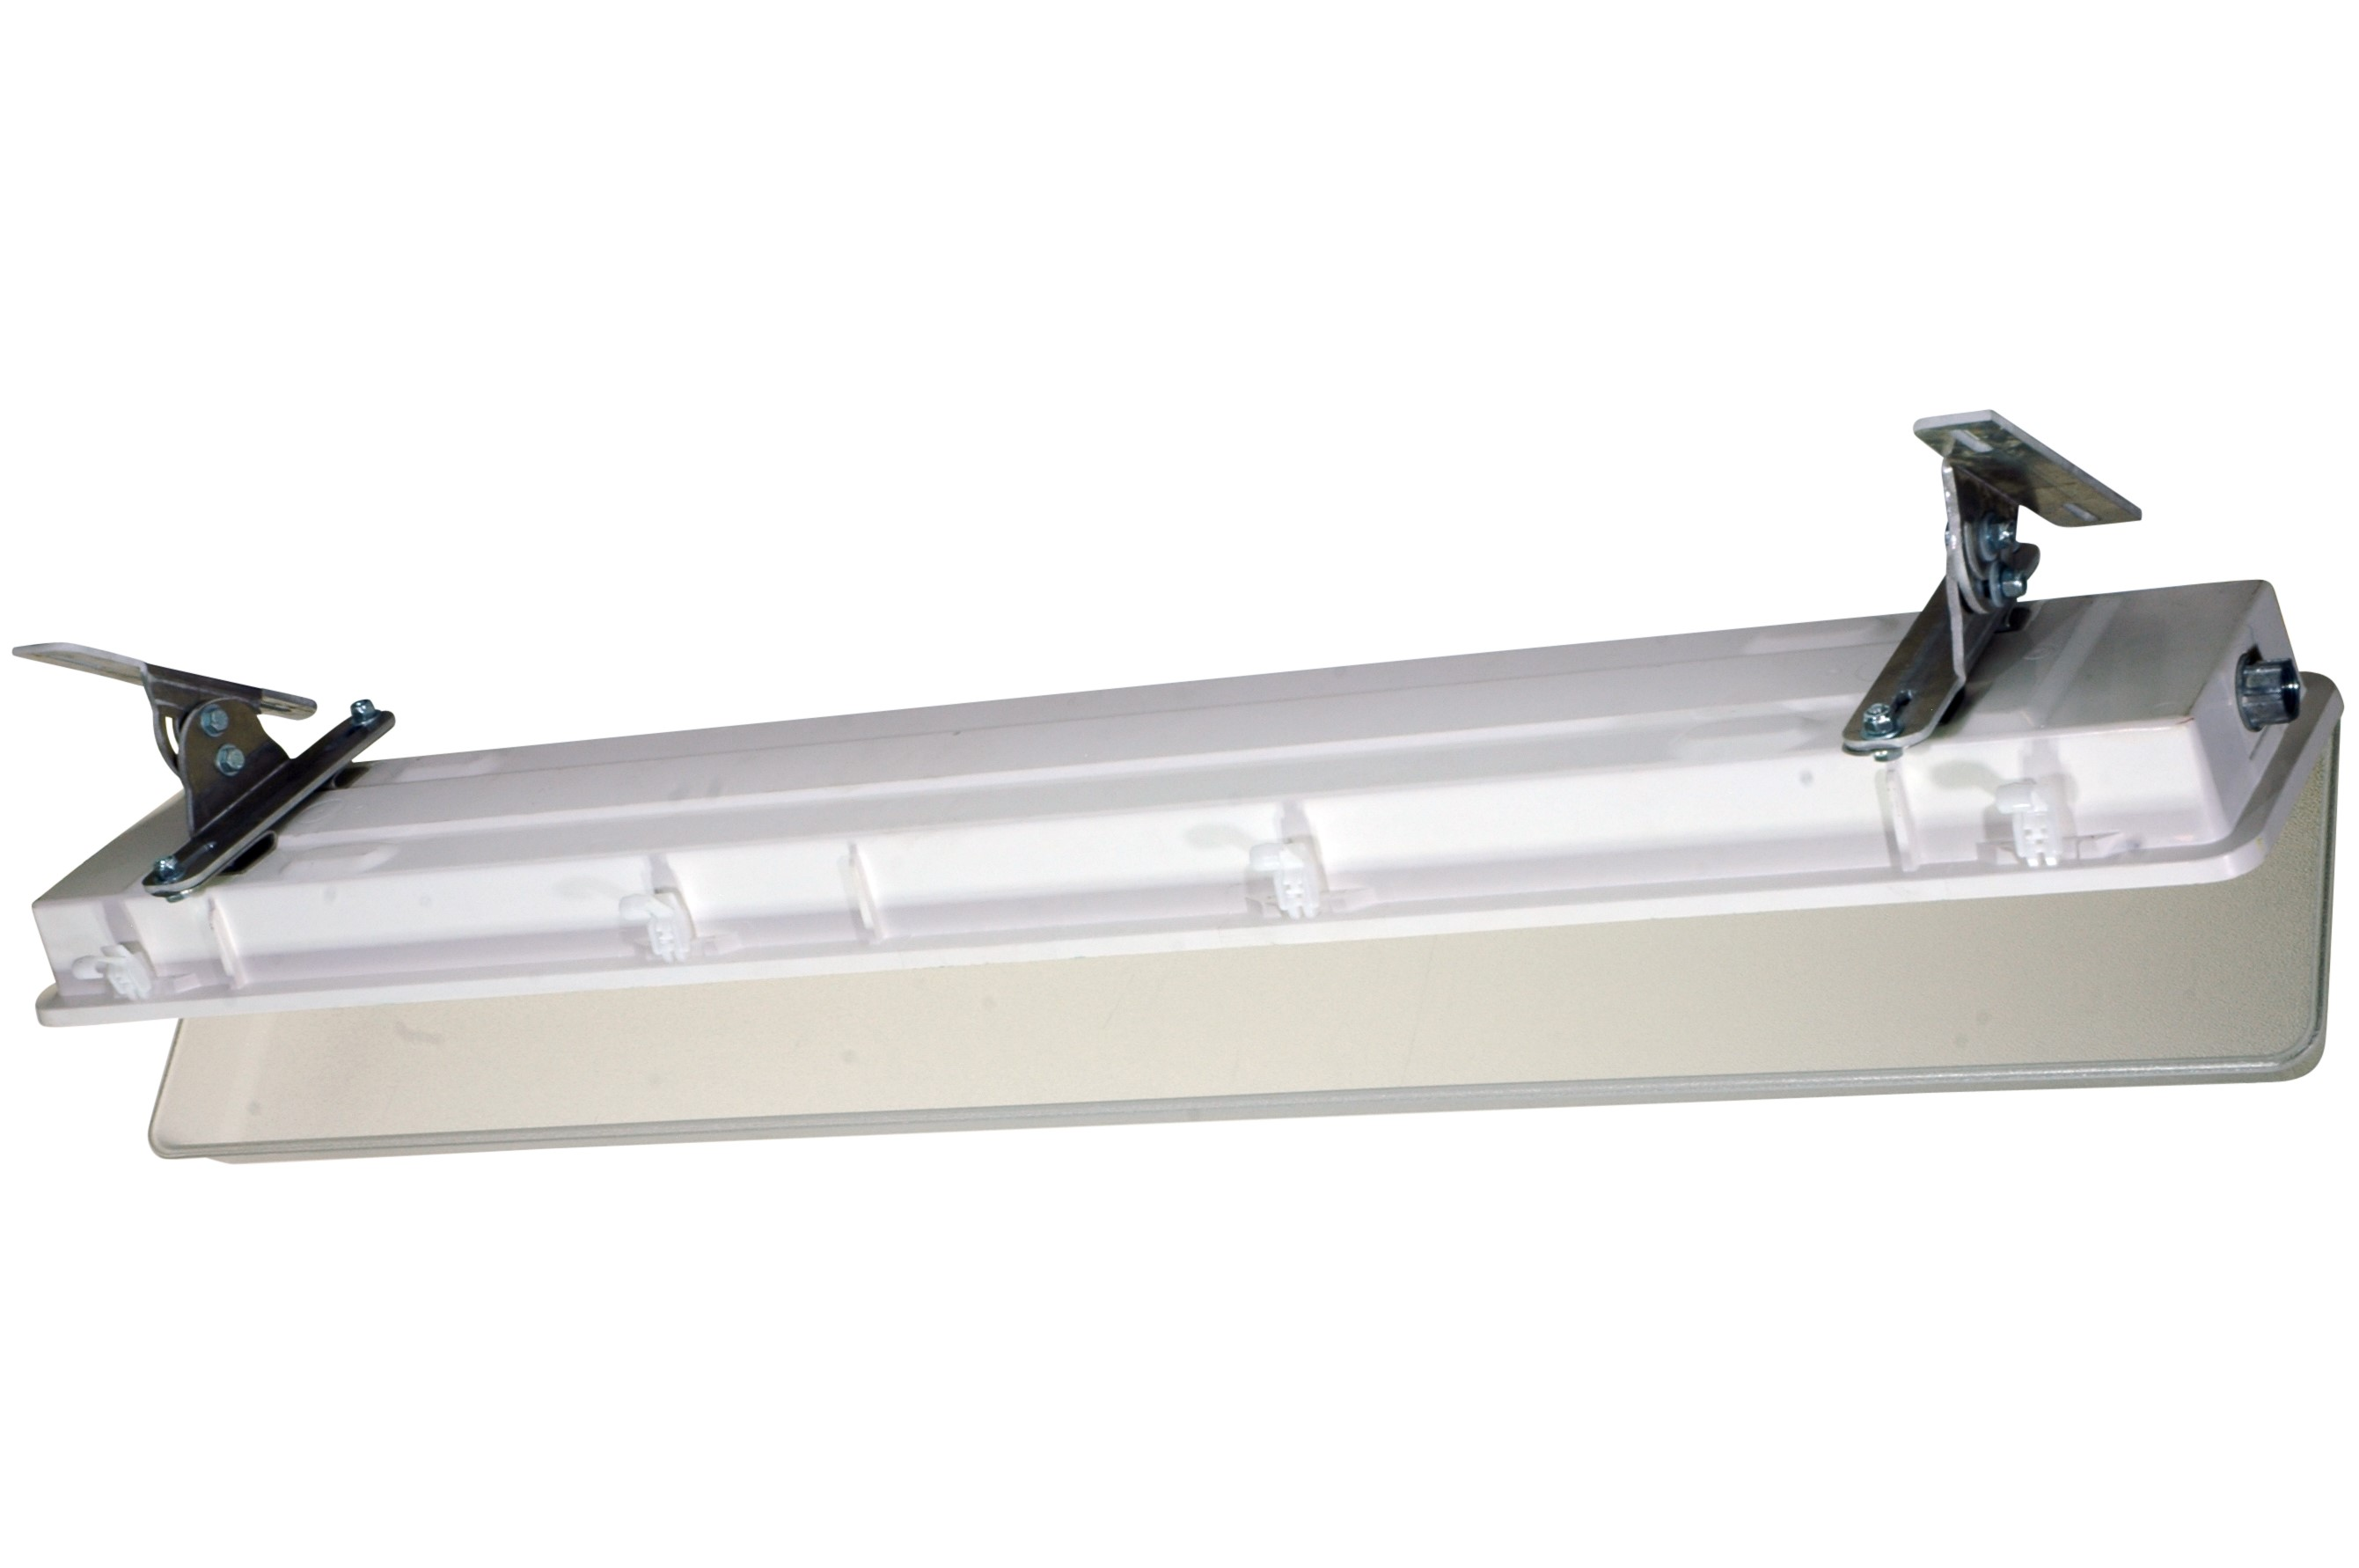 Larson electronics produces a class 1 division 2 led light fixture